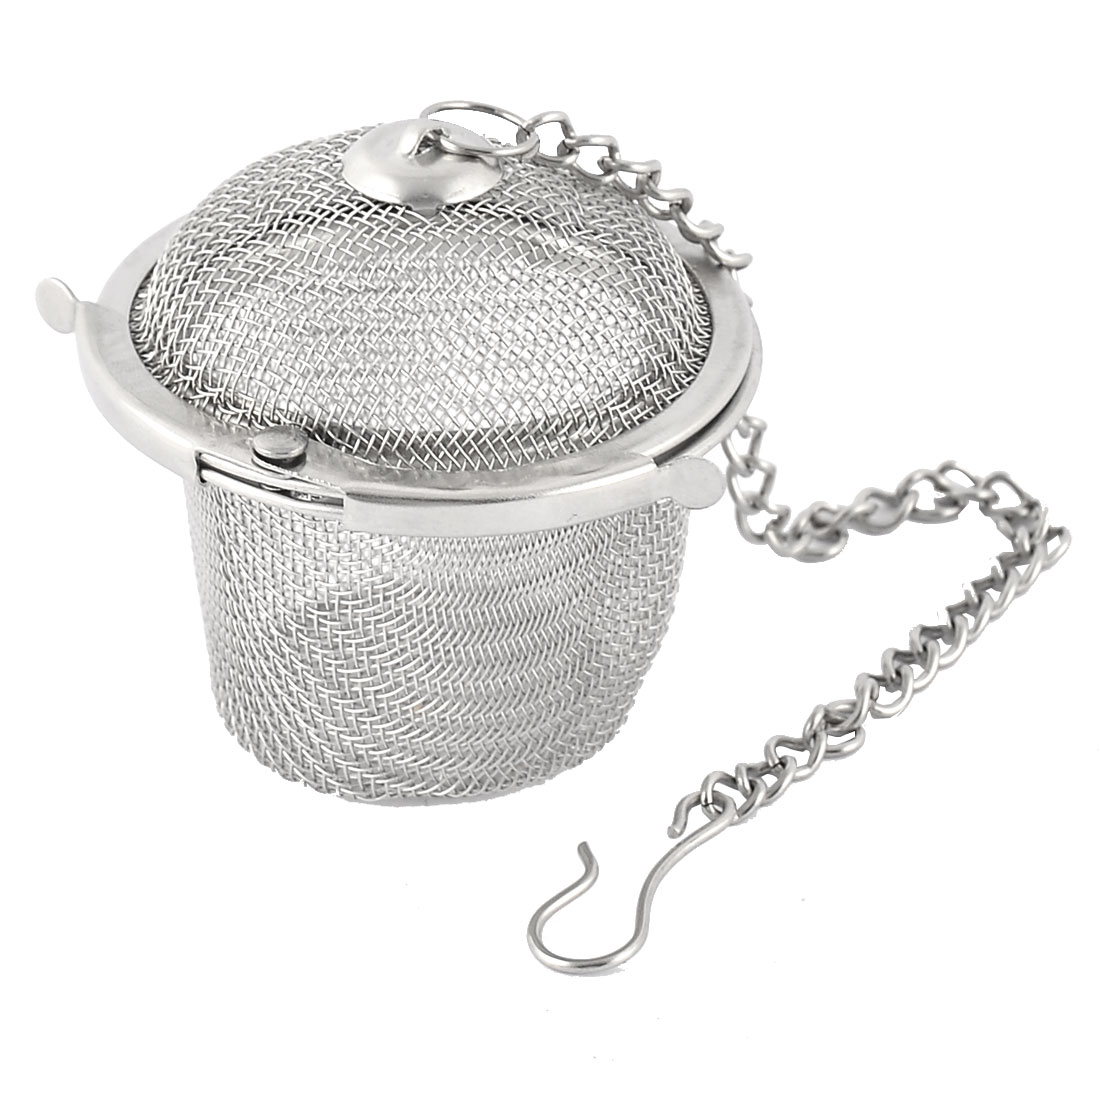 Home Kitchen Stainless Steel Multi Function Tea Spice Infuser Strainer Filter Seasoning Ball